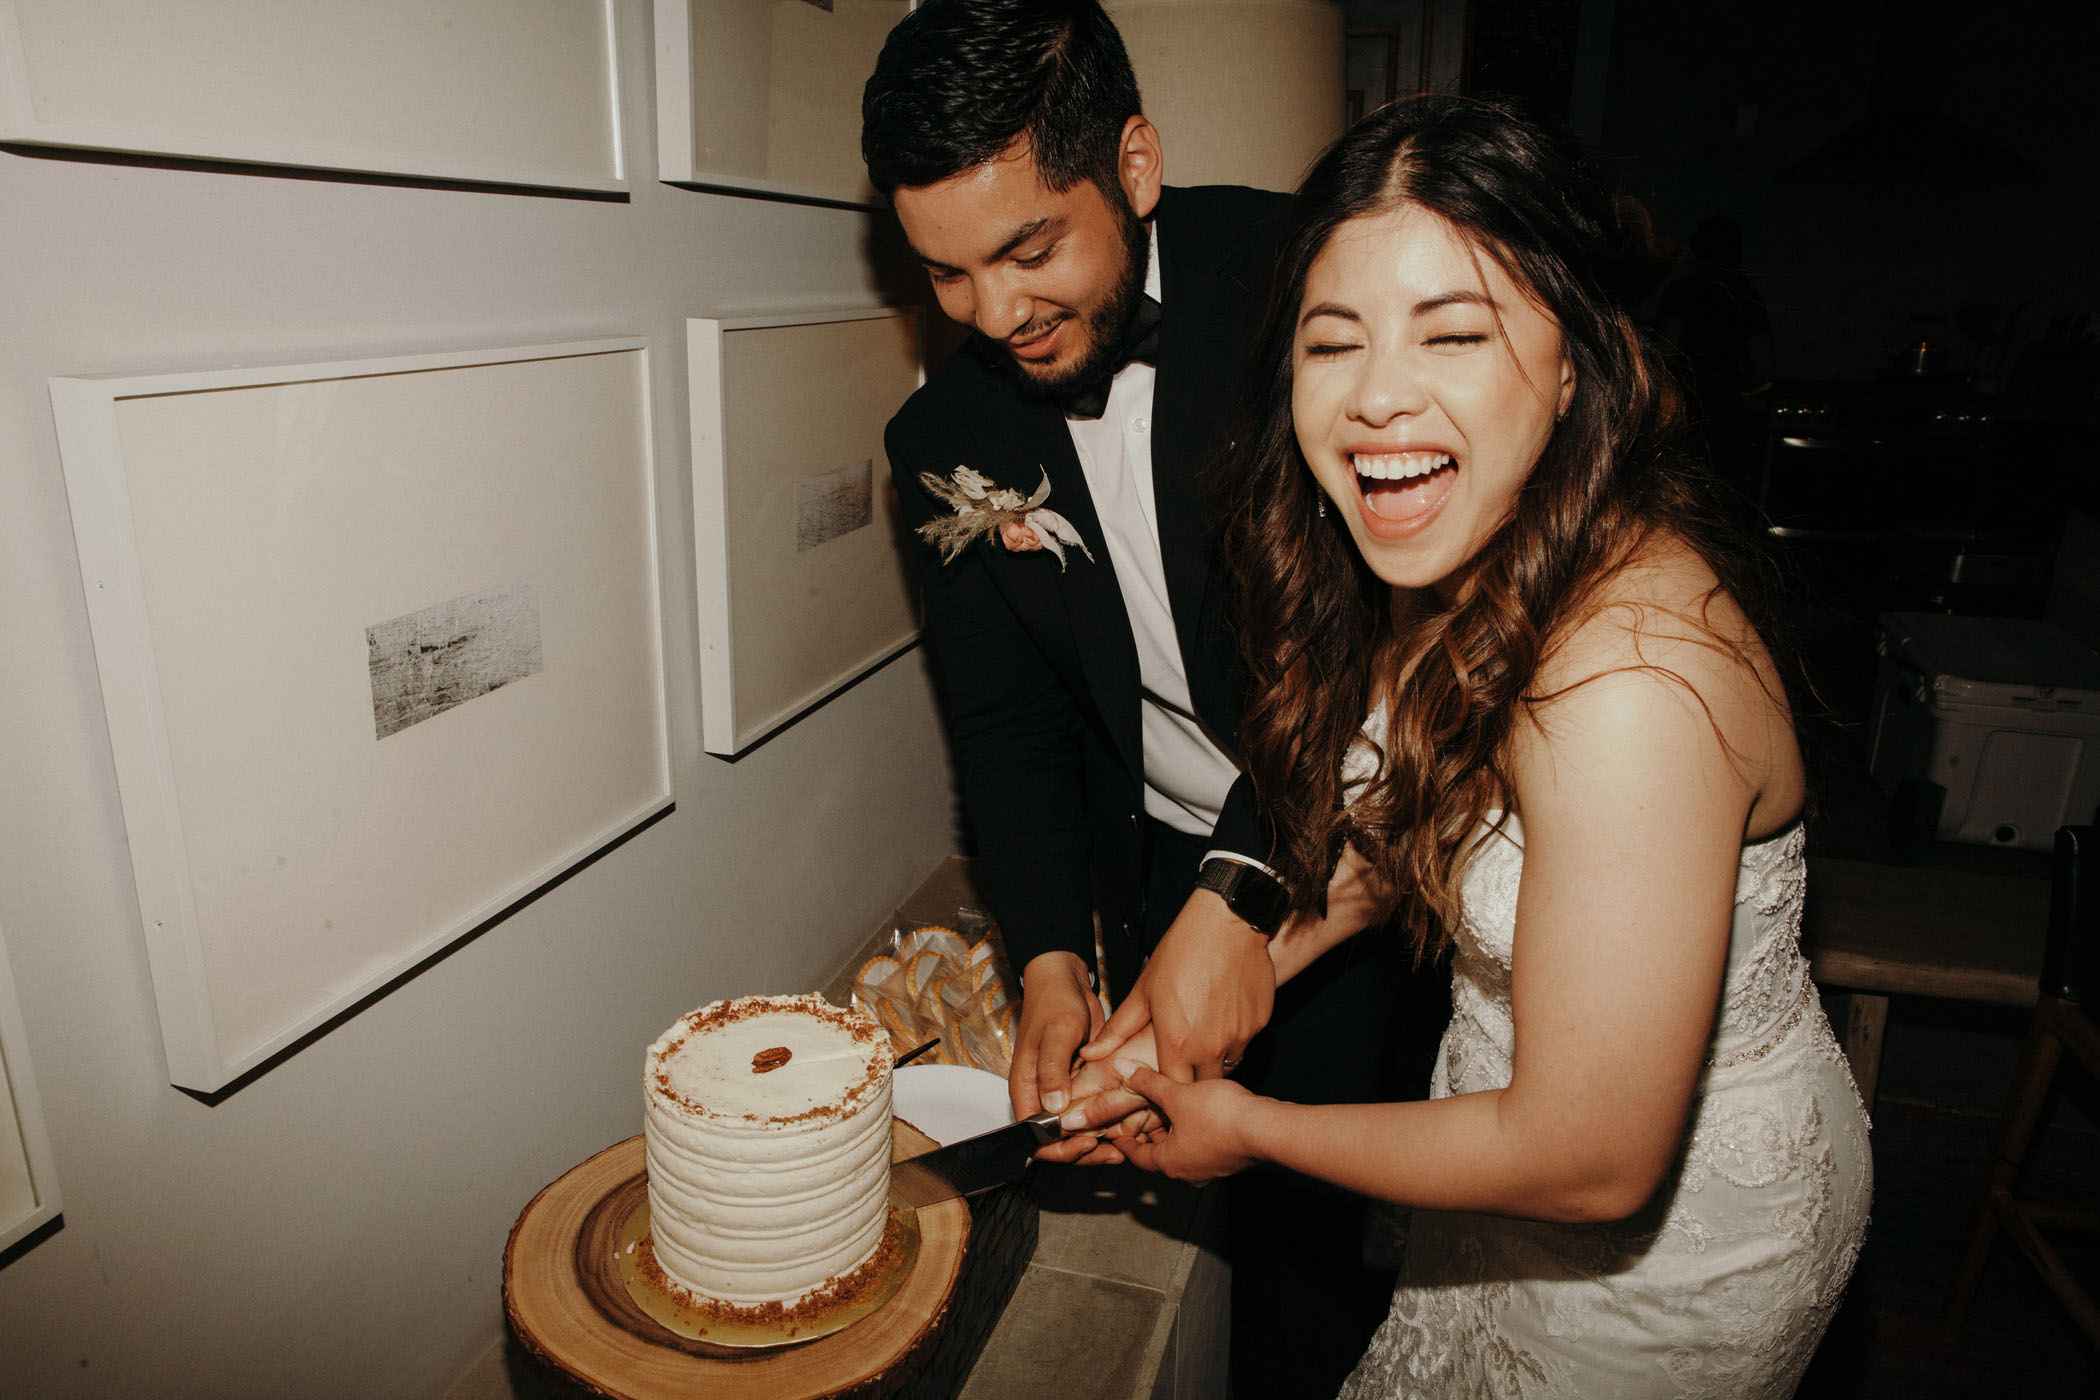 Bride and groom laughing while cutting their wedding cake